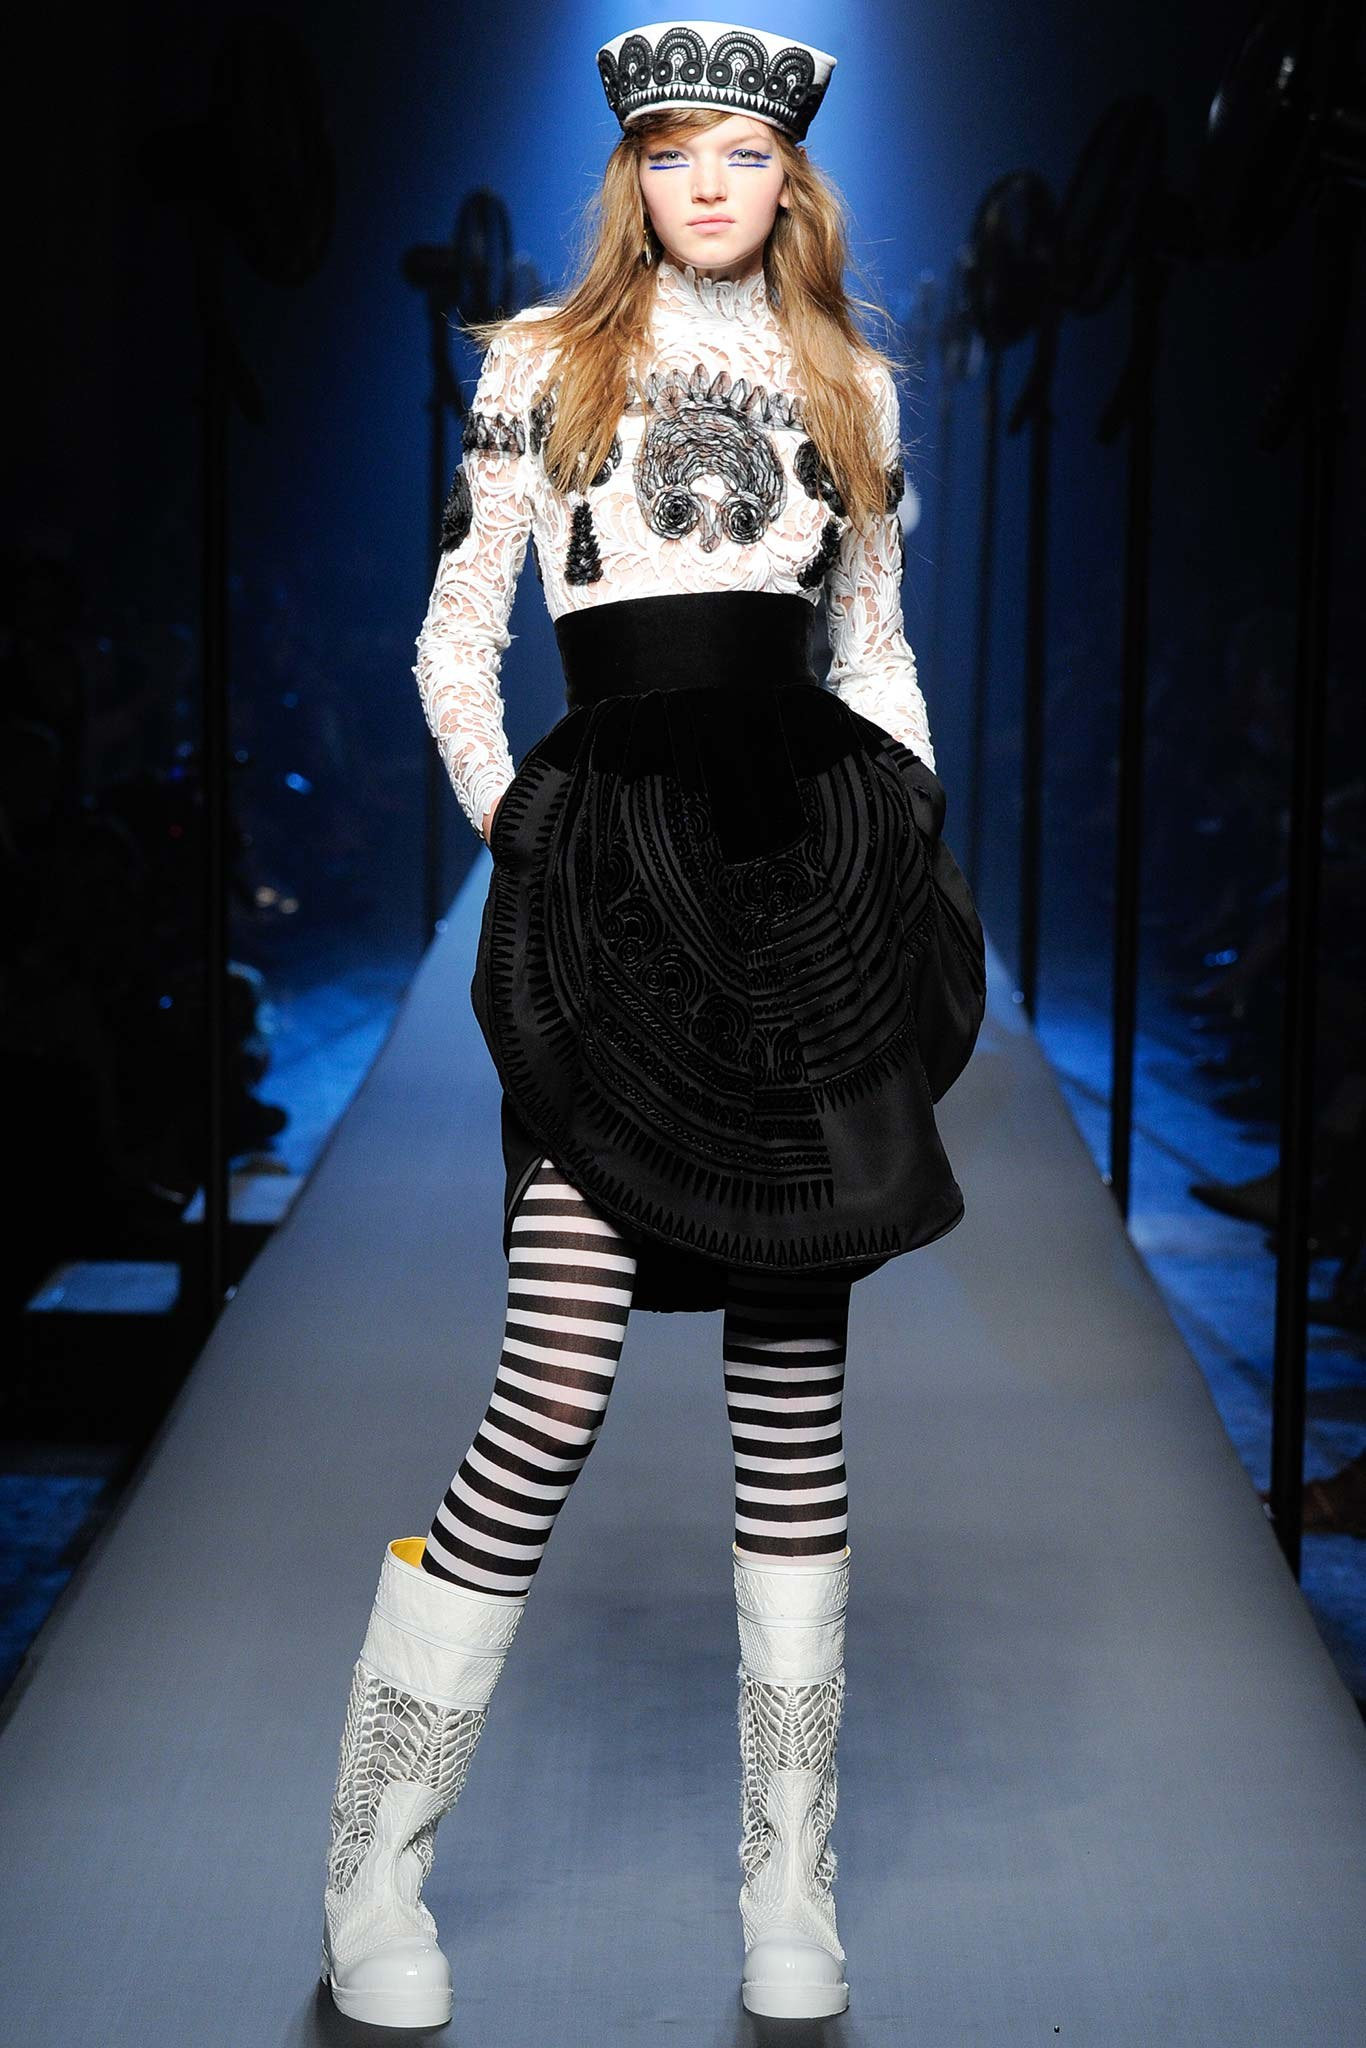 http://www.vogue.com/fashion-shows/fall-2015-couture/jean-paul-gaultier/slideshow/collection#21